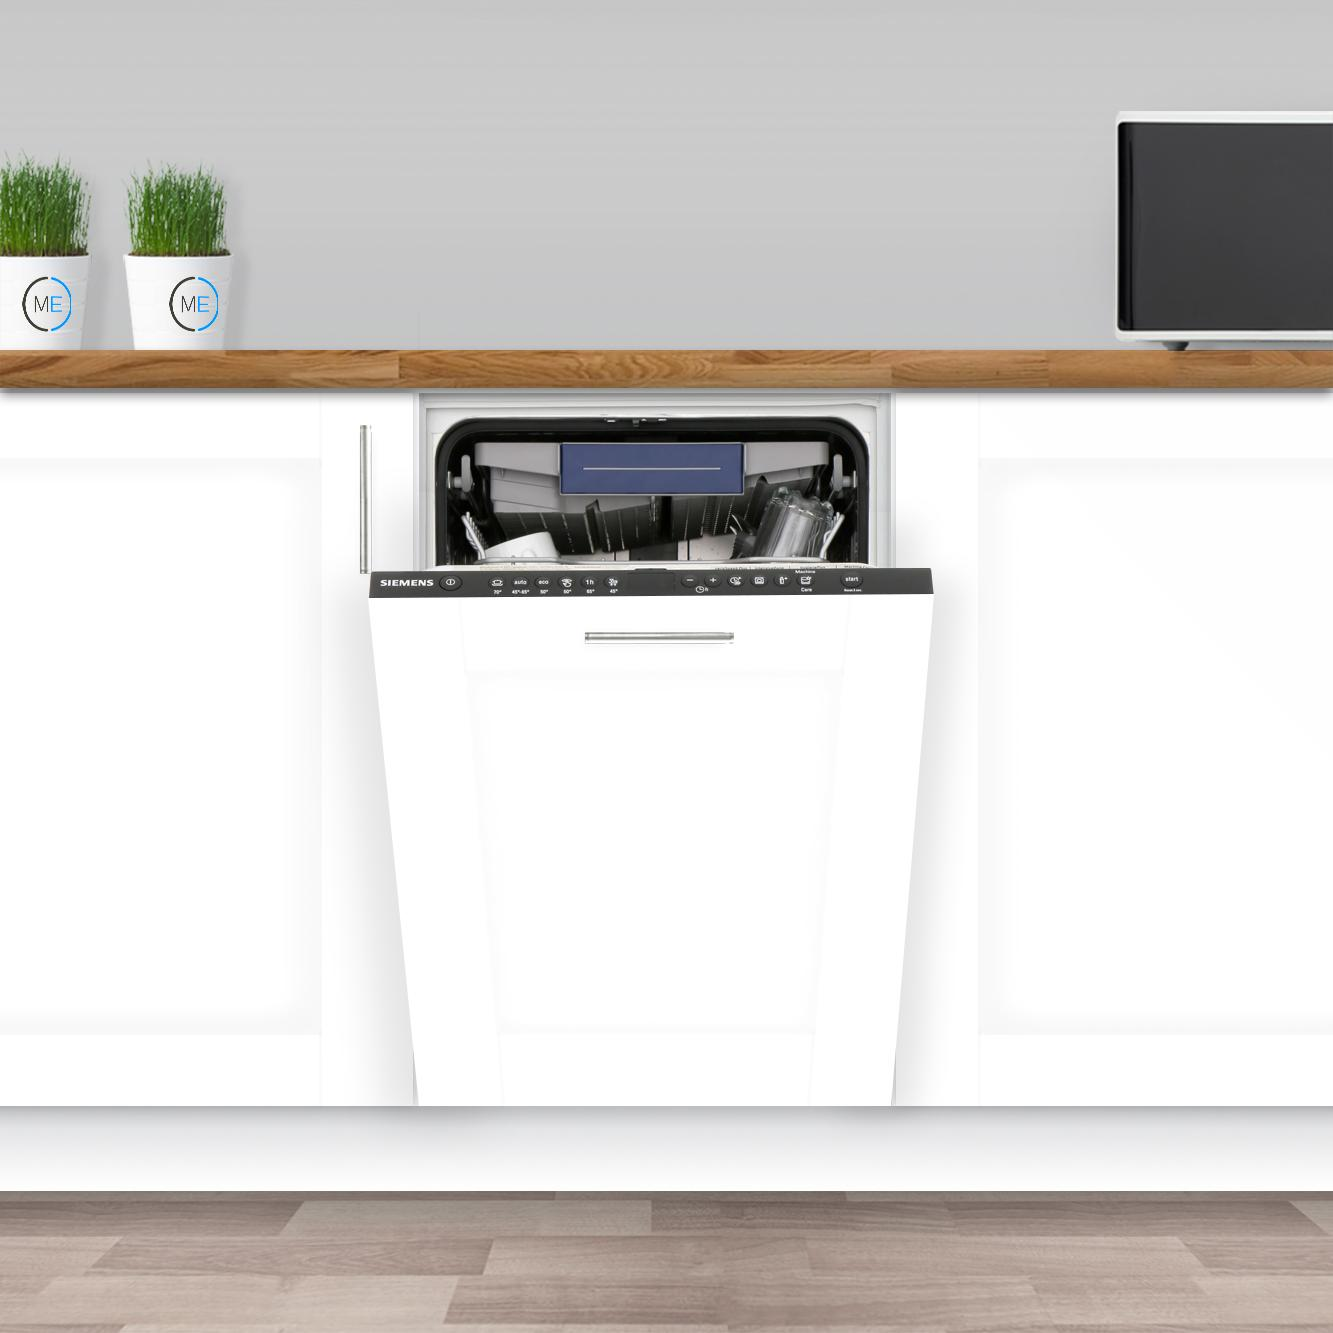 Buy Siemens iQ300 SR636D00MG Built In Fully Int. Slimline Dishwasher (SR636D00MG) - Stainless Steel Control Panel   Marks Electrical